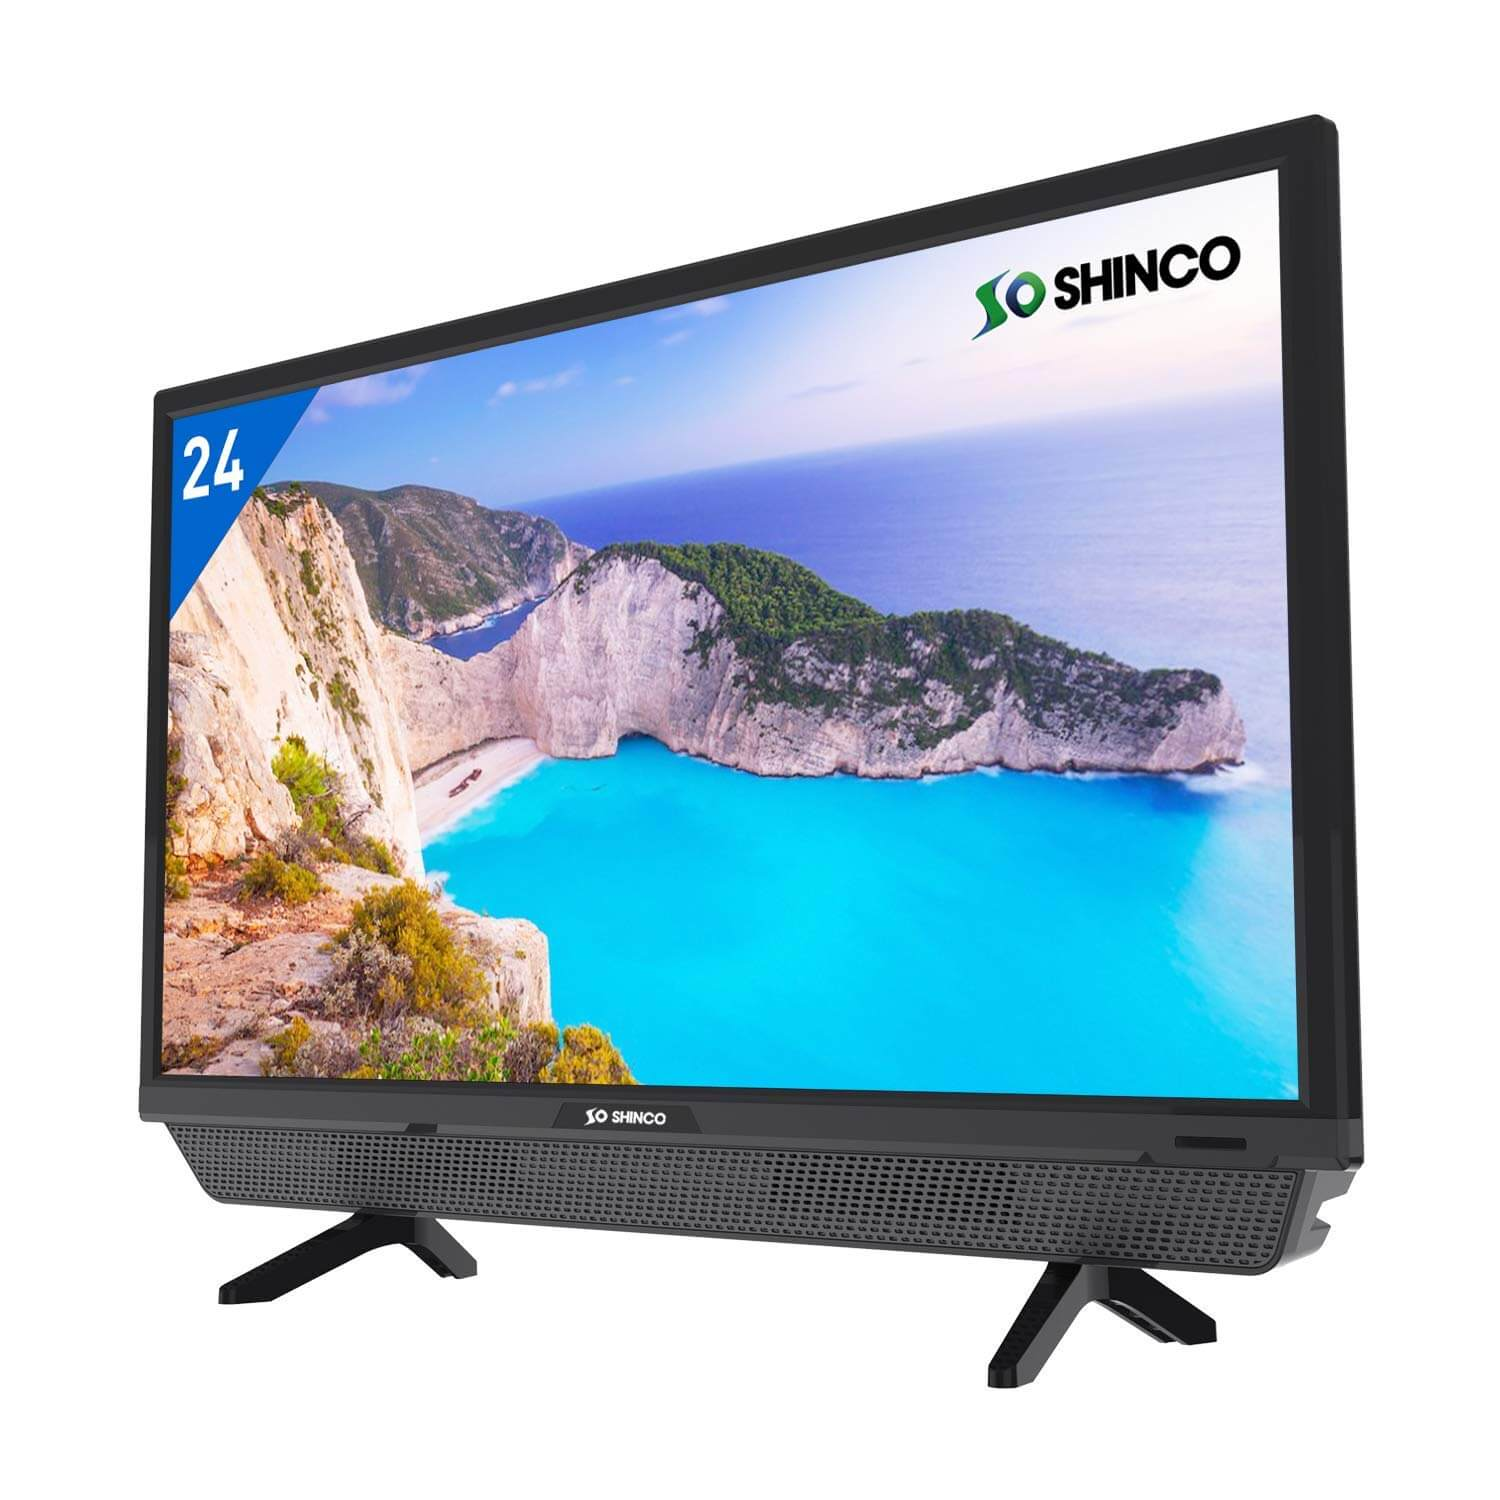 60cm Tv Shinco So2a 24 Inches Hd Led Tv Shinco